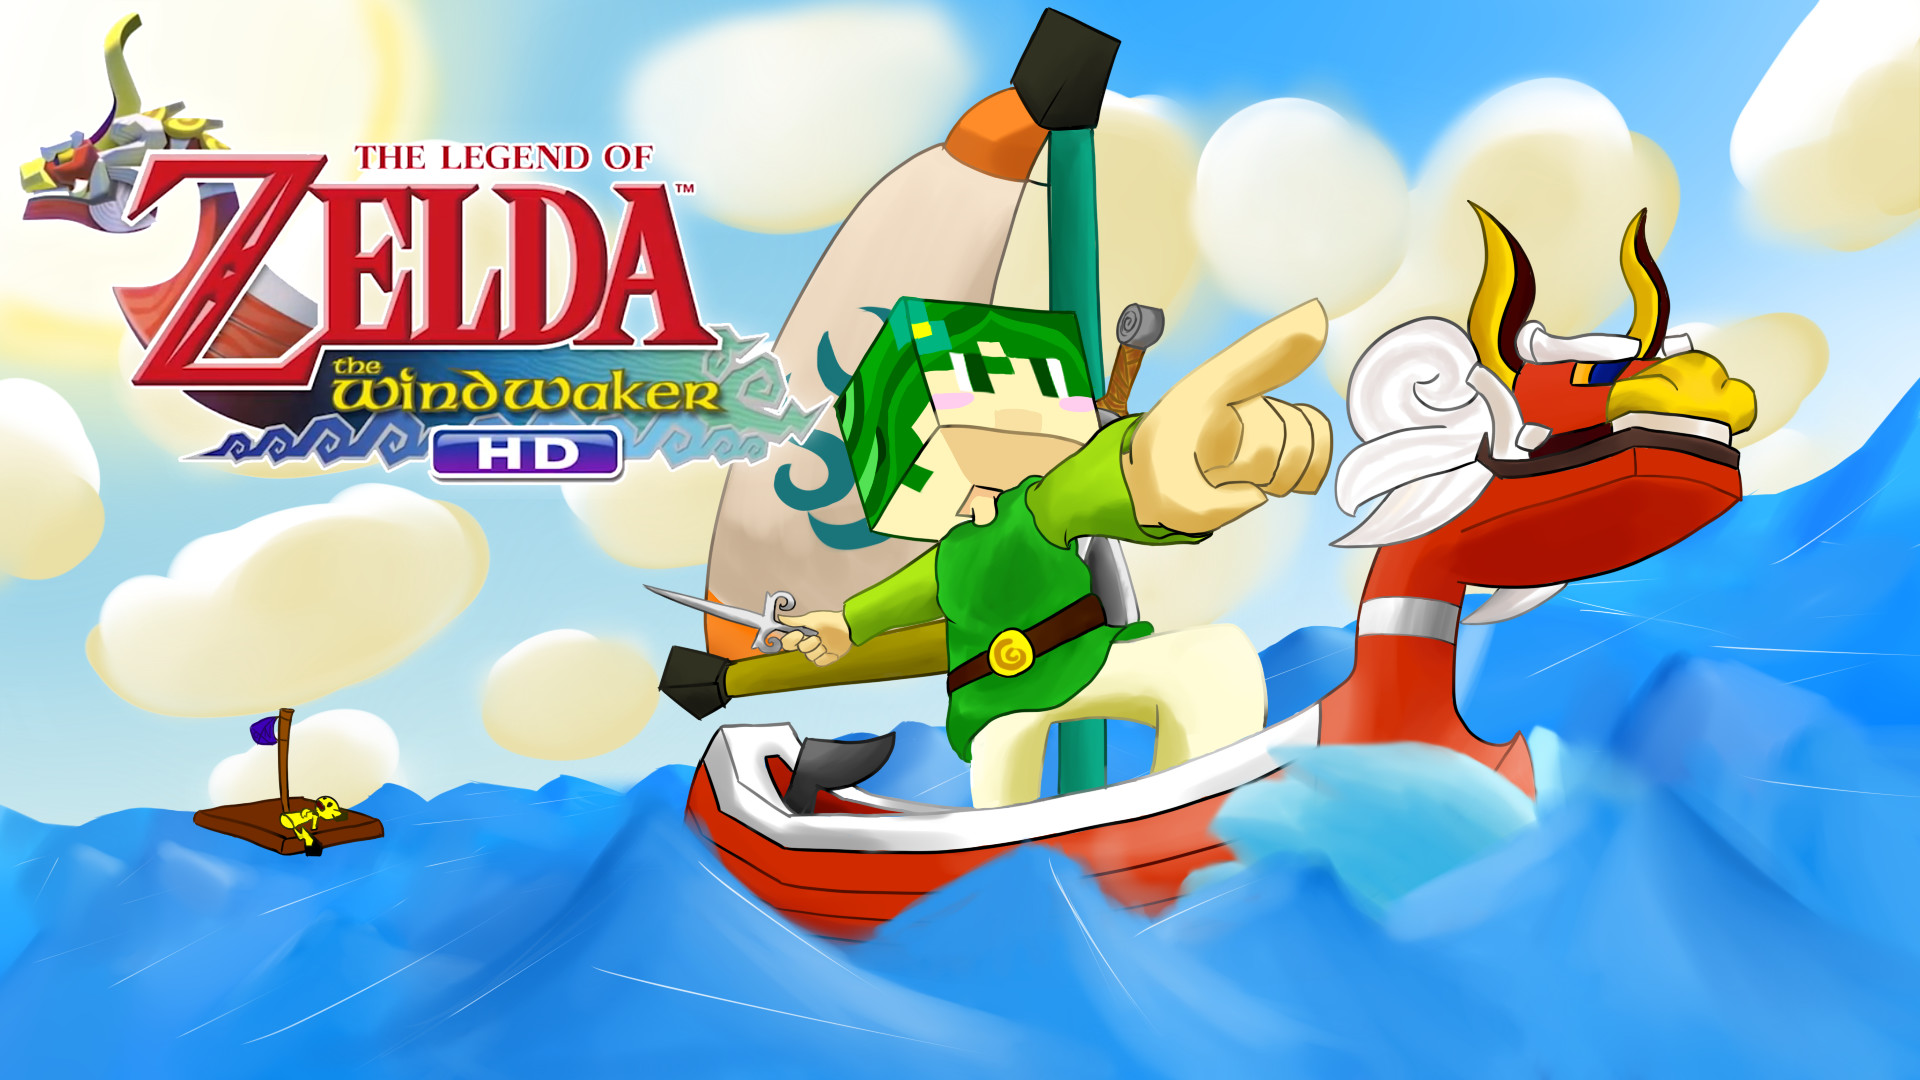 … Legend of Zelda: The Wind Waker HD Thumbnail :D by BananaPsycho